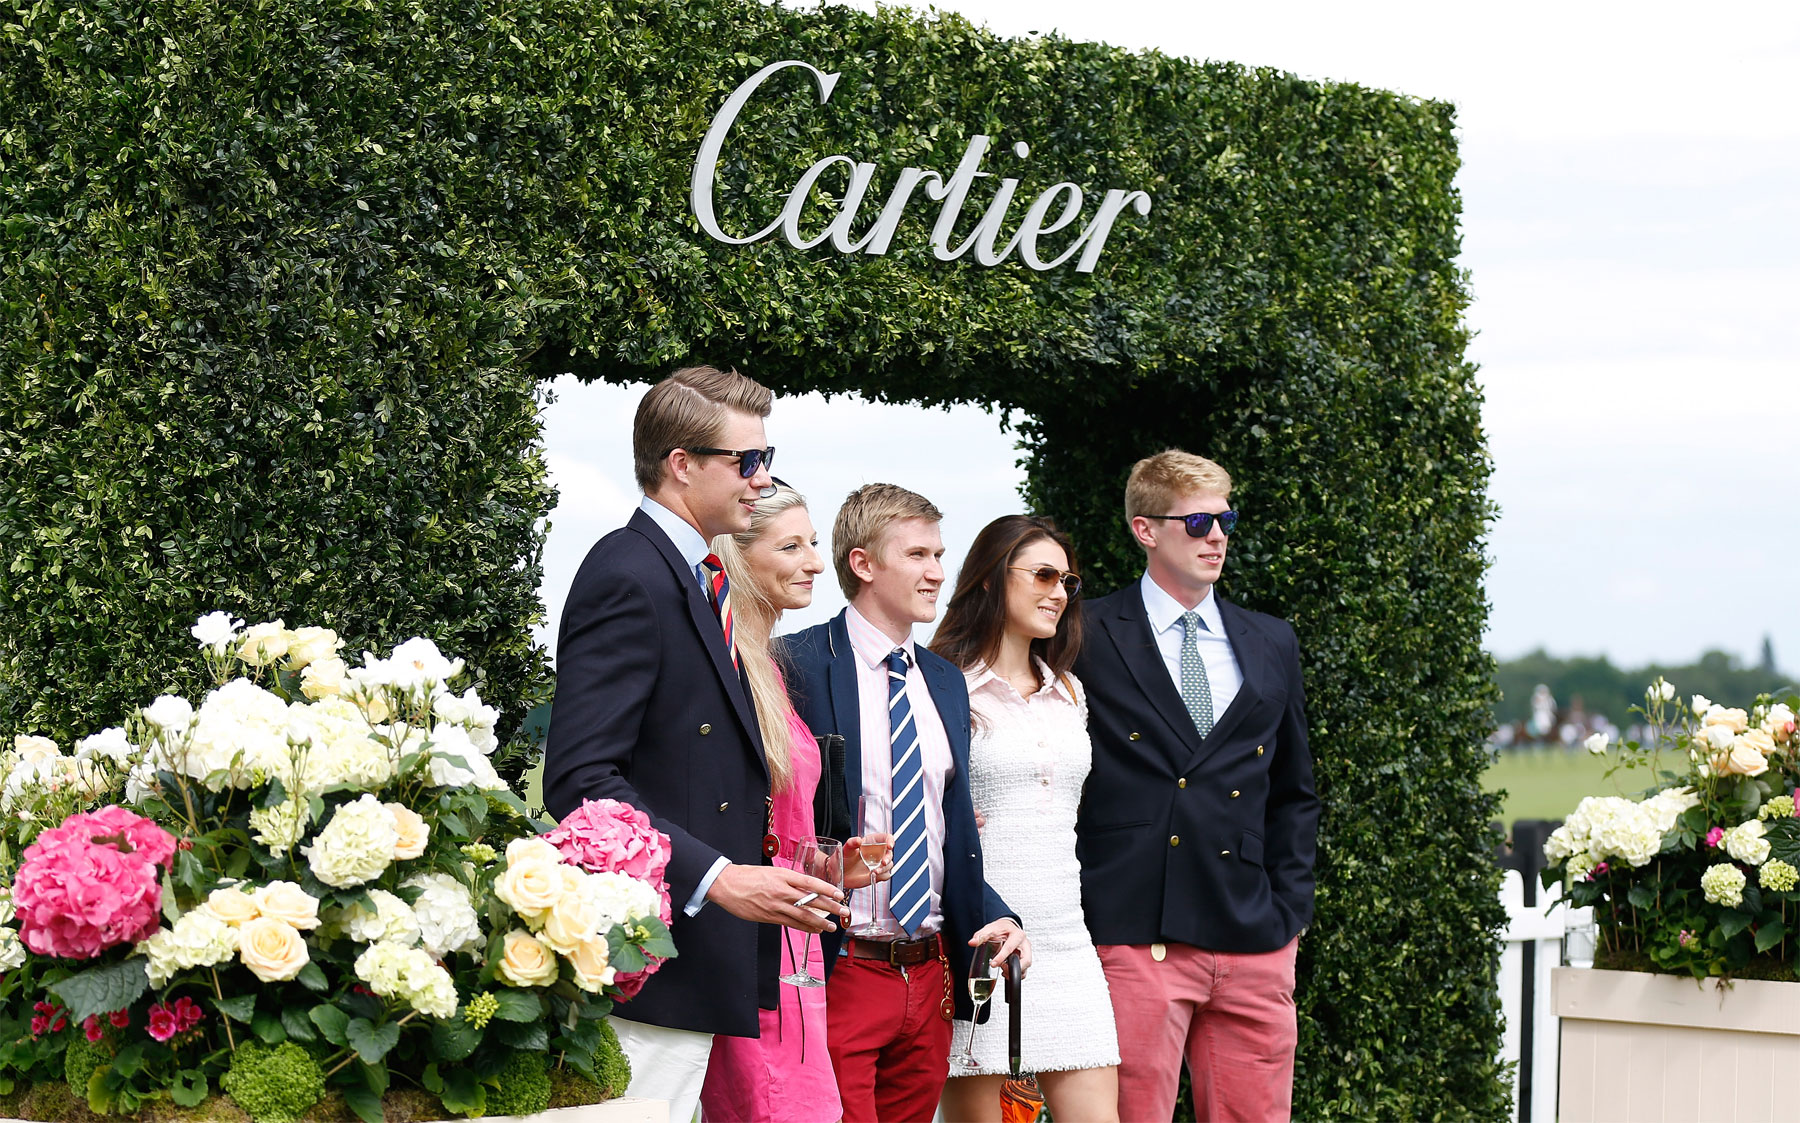 Cartier Celebrates 32 Years Of Polo Sponsorship At The Queen's Cup Final 2016